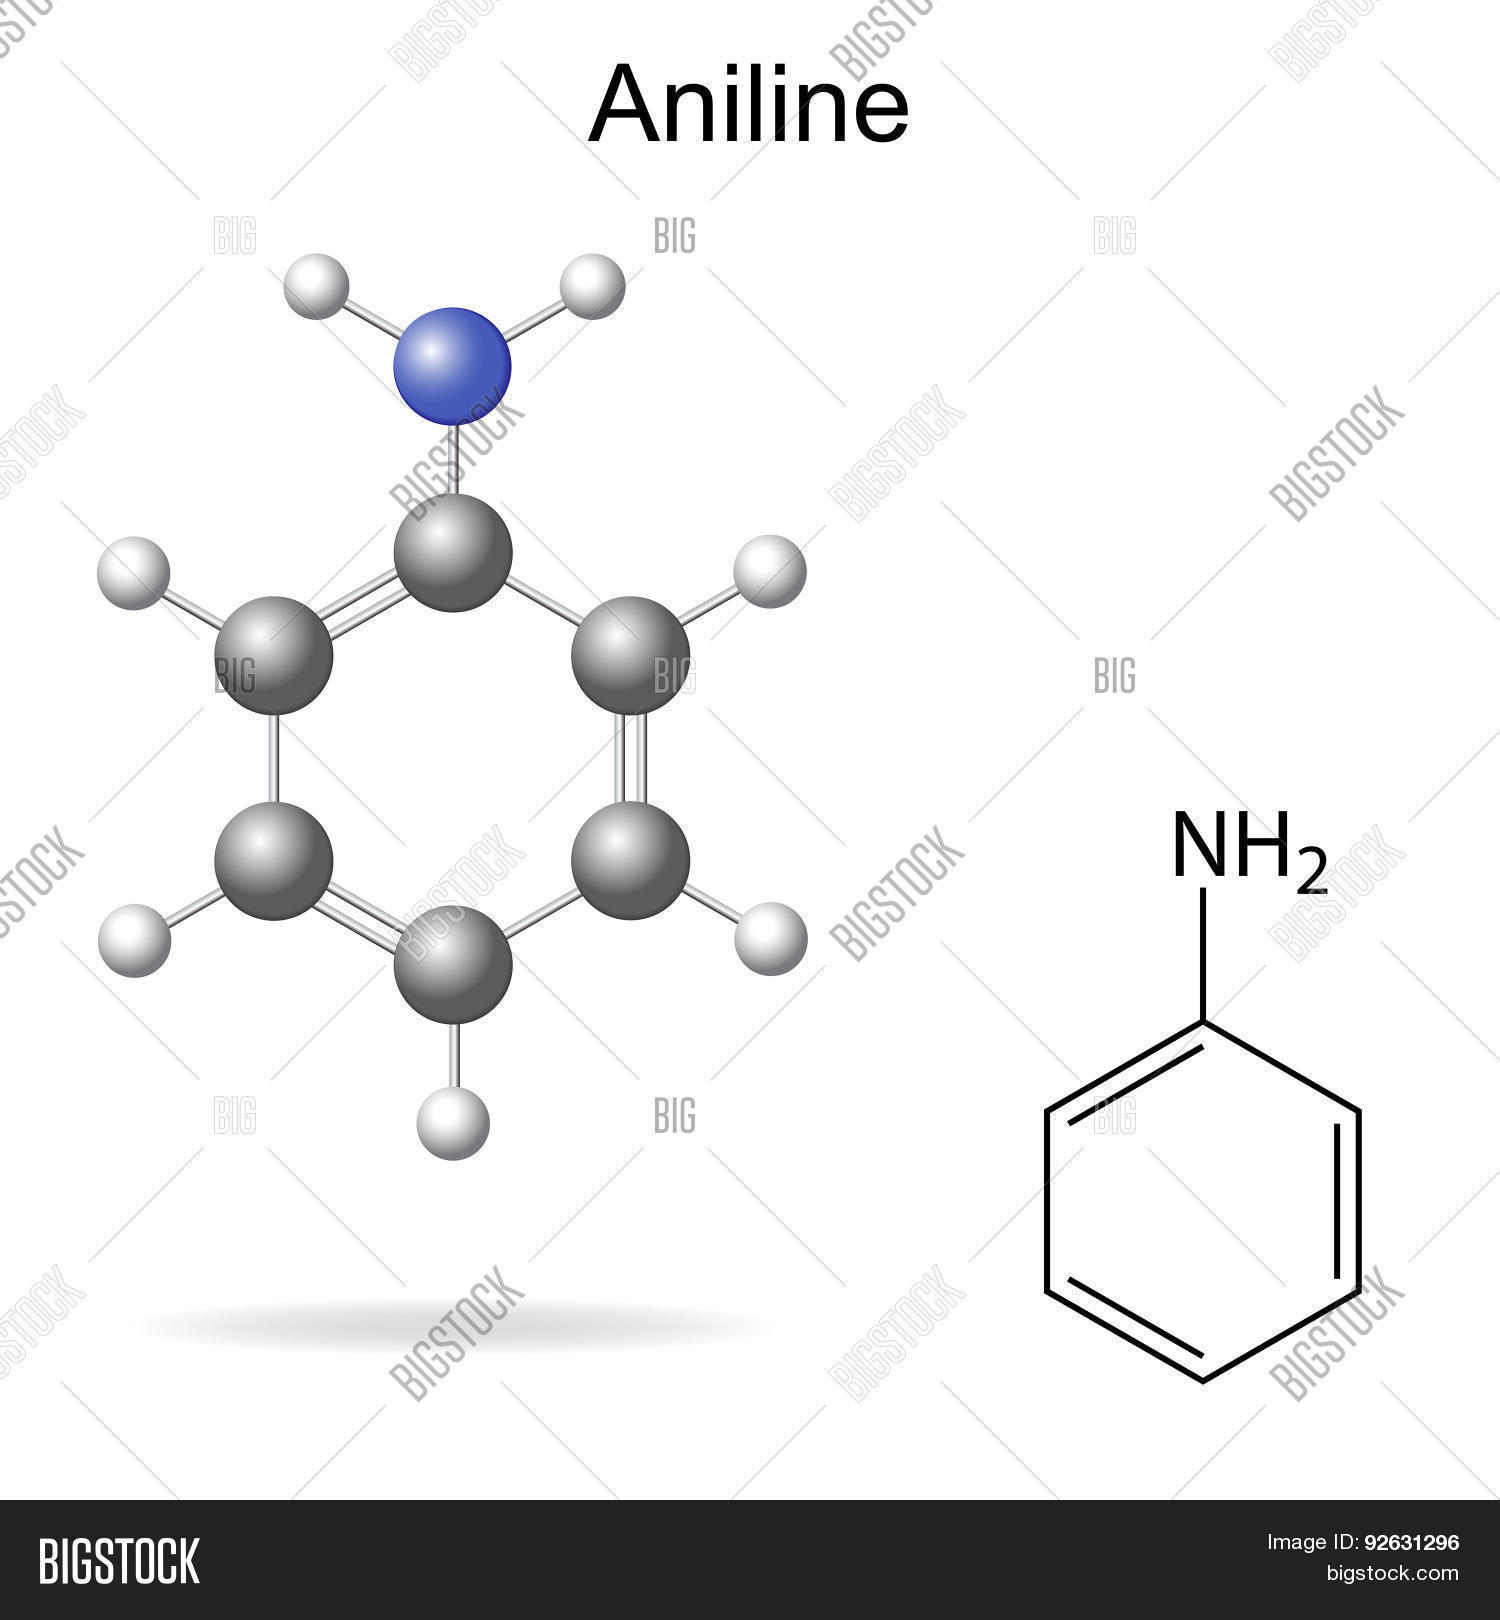 hight resolution of structural chemical formula and model of aniline molecule 2d and 3d illustration isolated vector eps 8